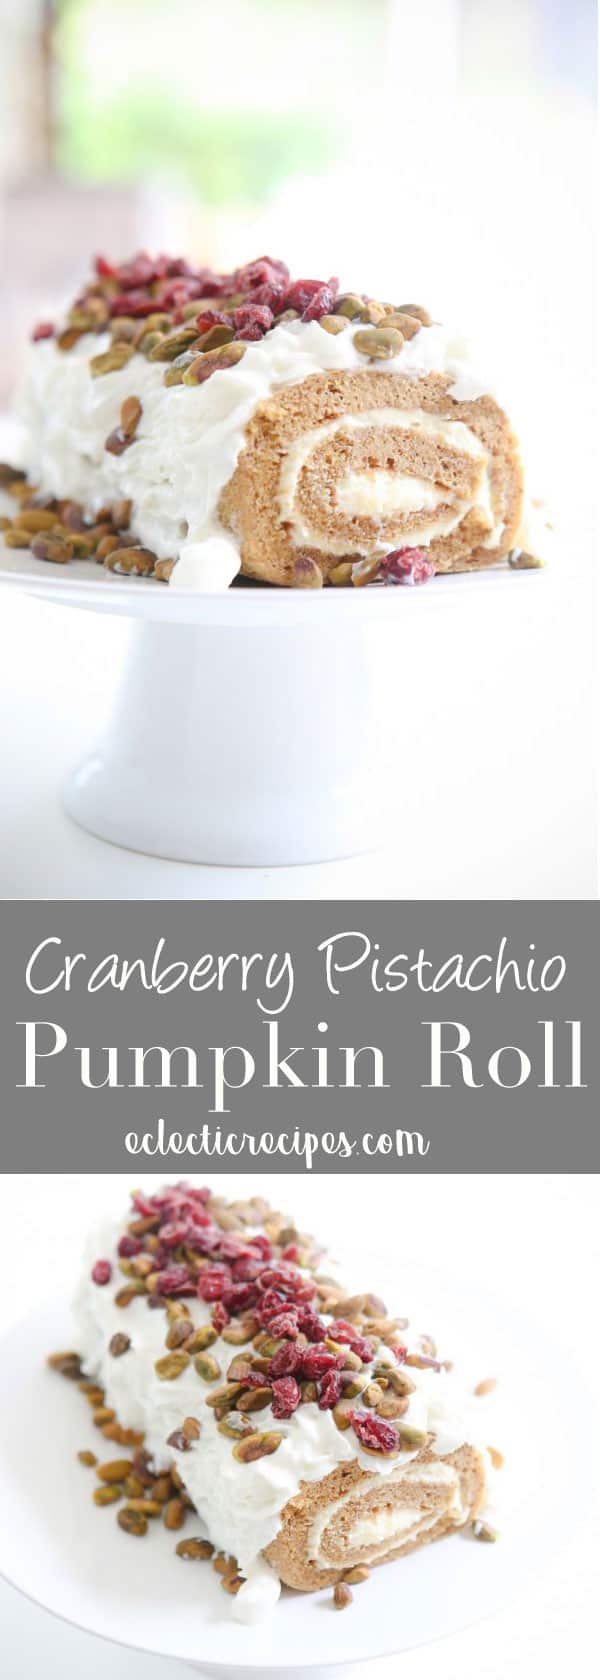 Cranberry Pistachio Pumpkin Roll is so easy and delicious! Perfect for the holidays or anytime of year. #Reddiforfall #holidays #christmas #pumpkin #fall